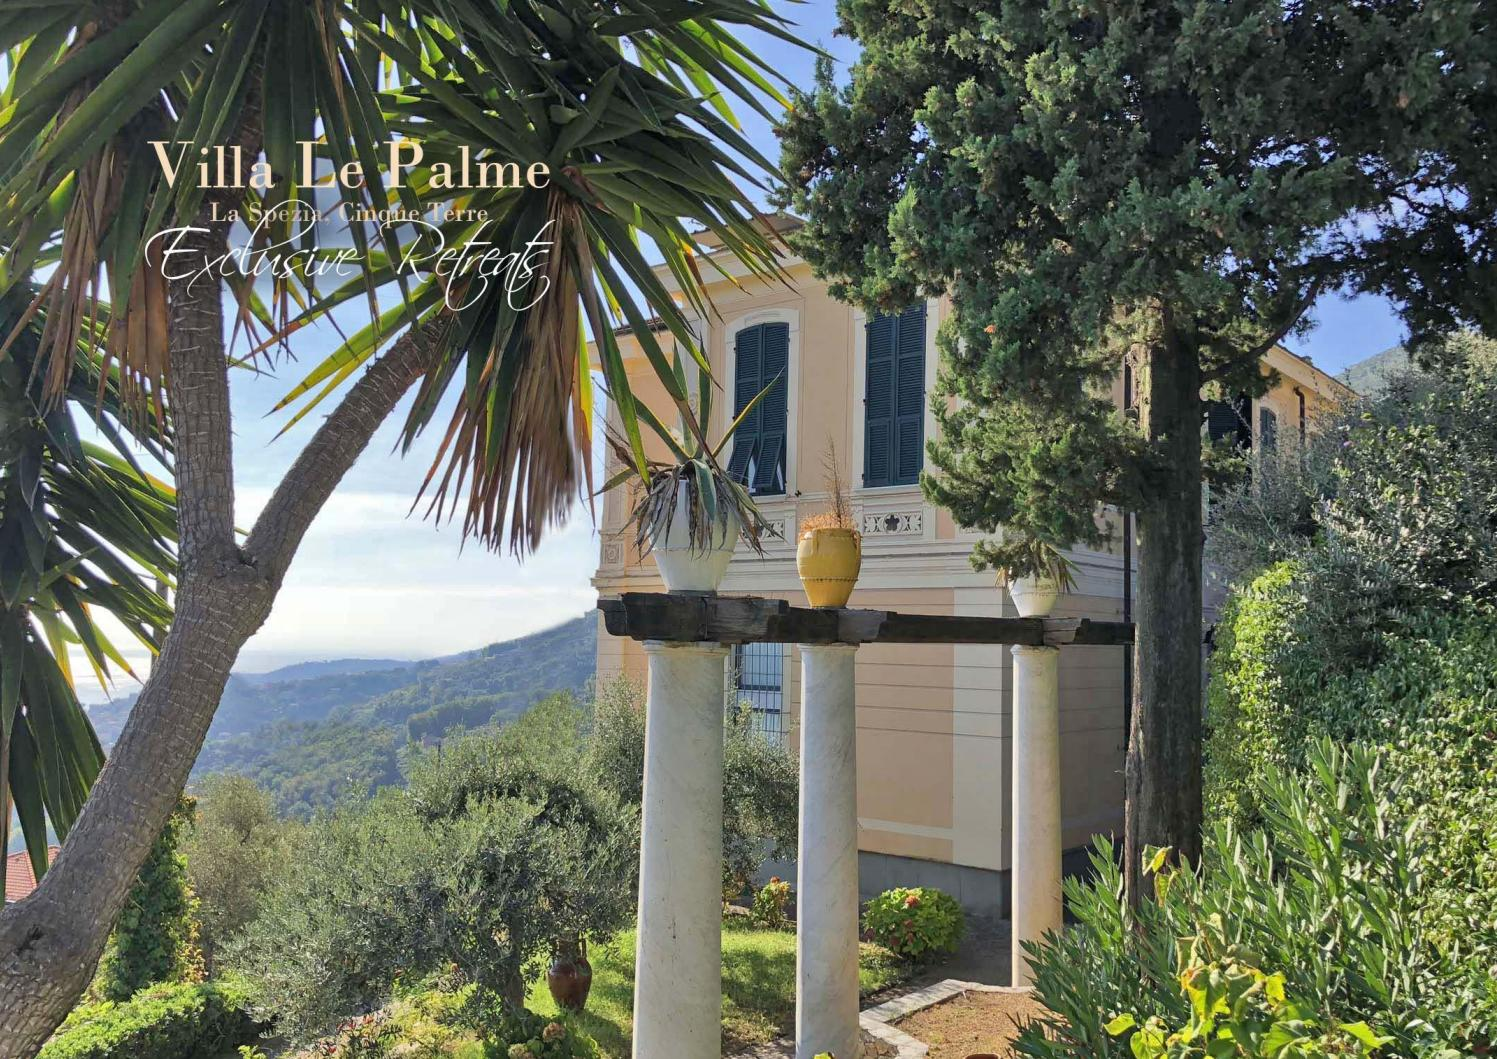 Villa Le Palme Cinque Terre Retreats By Villasretreats Issuu